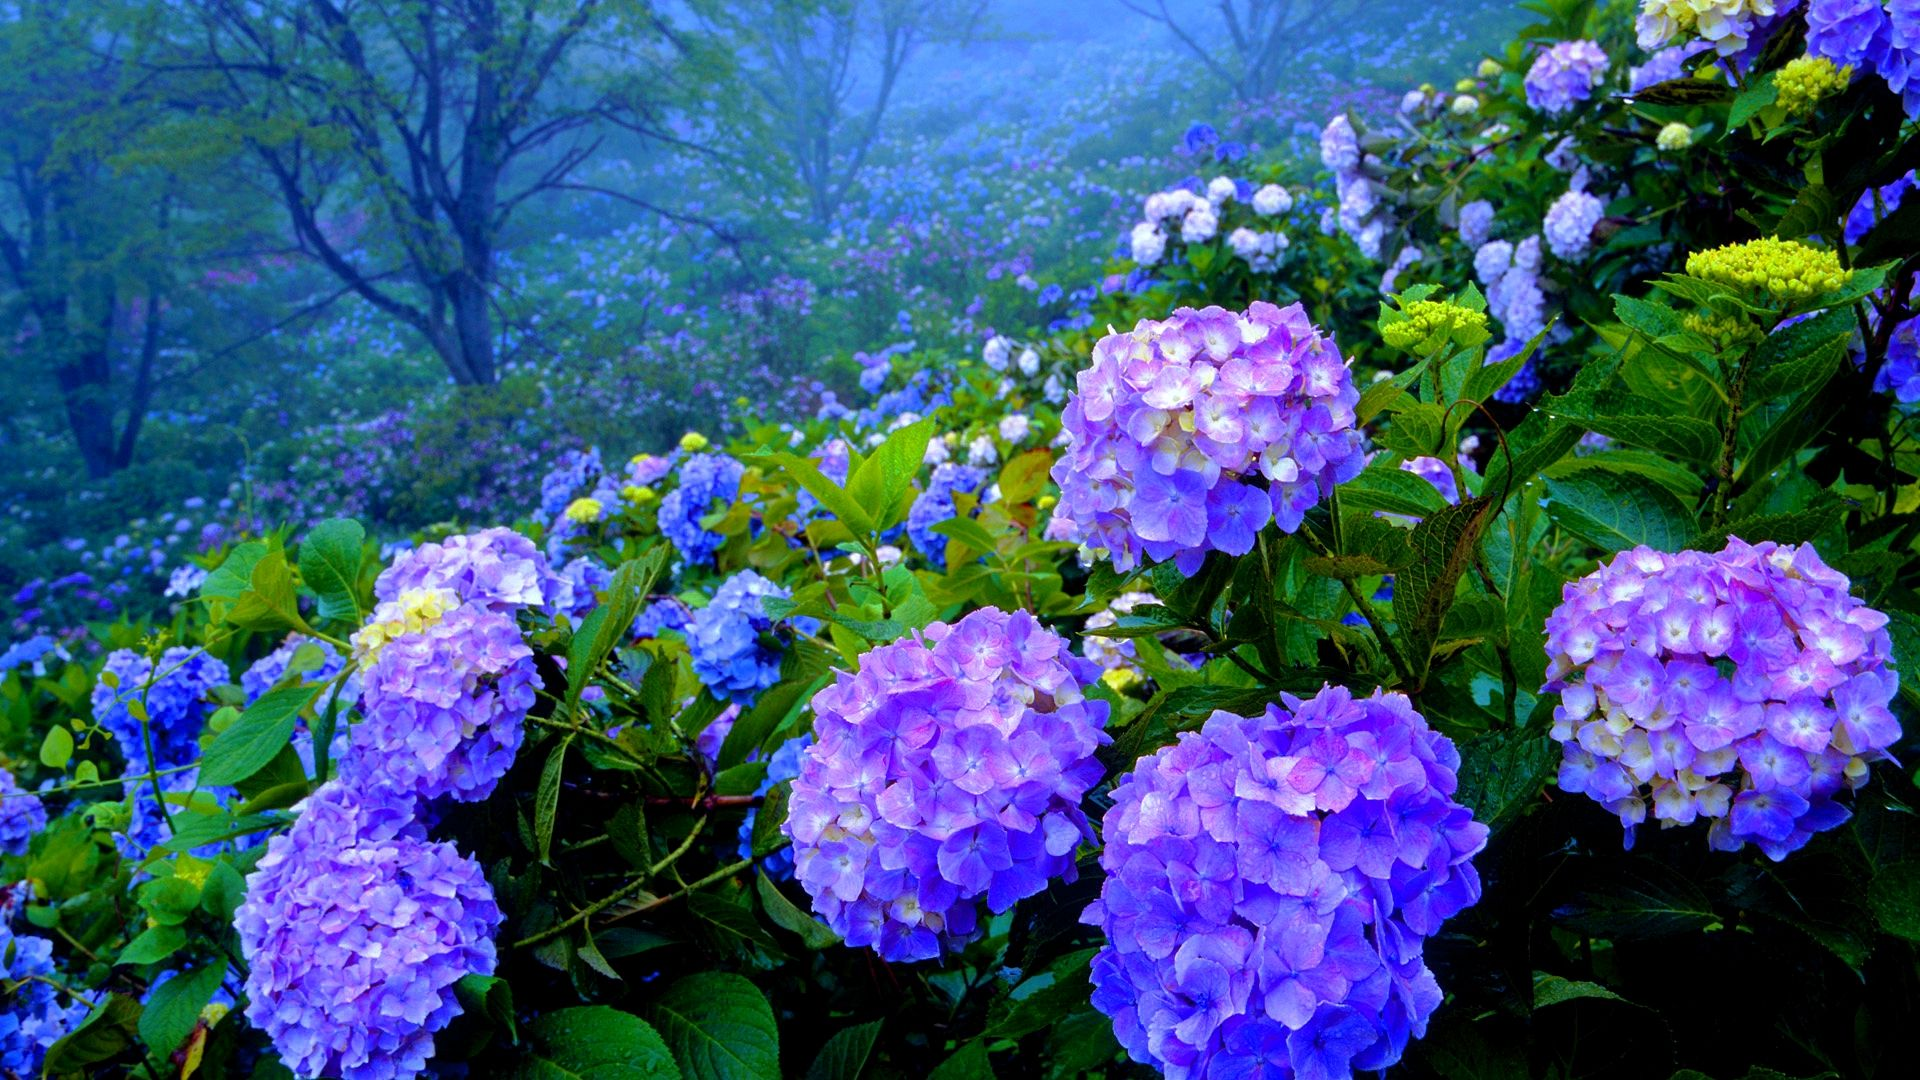 Hydrangea Hydrangeaceae is more known under its popular name of